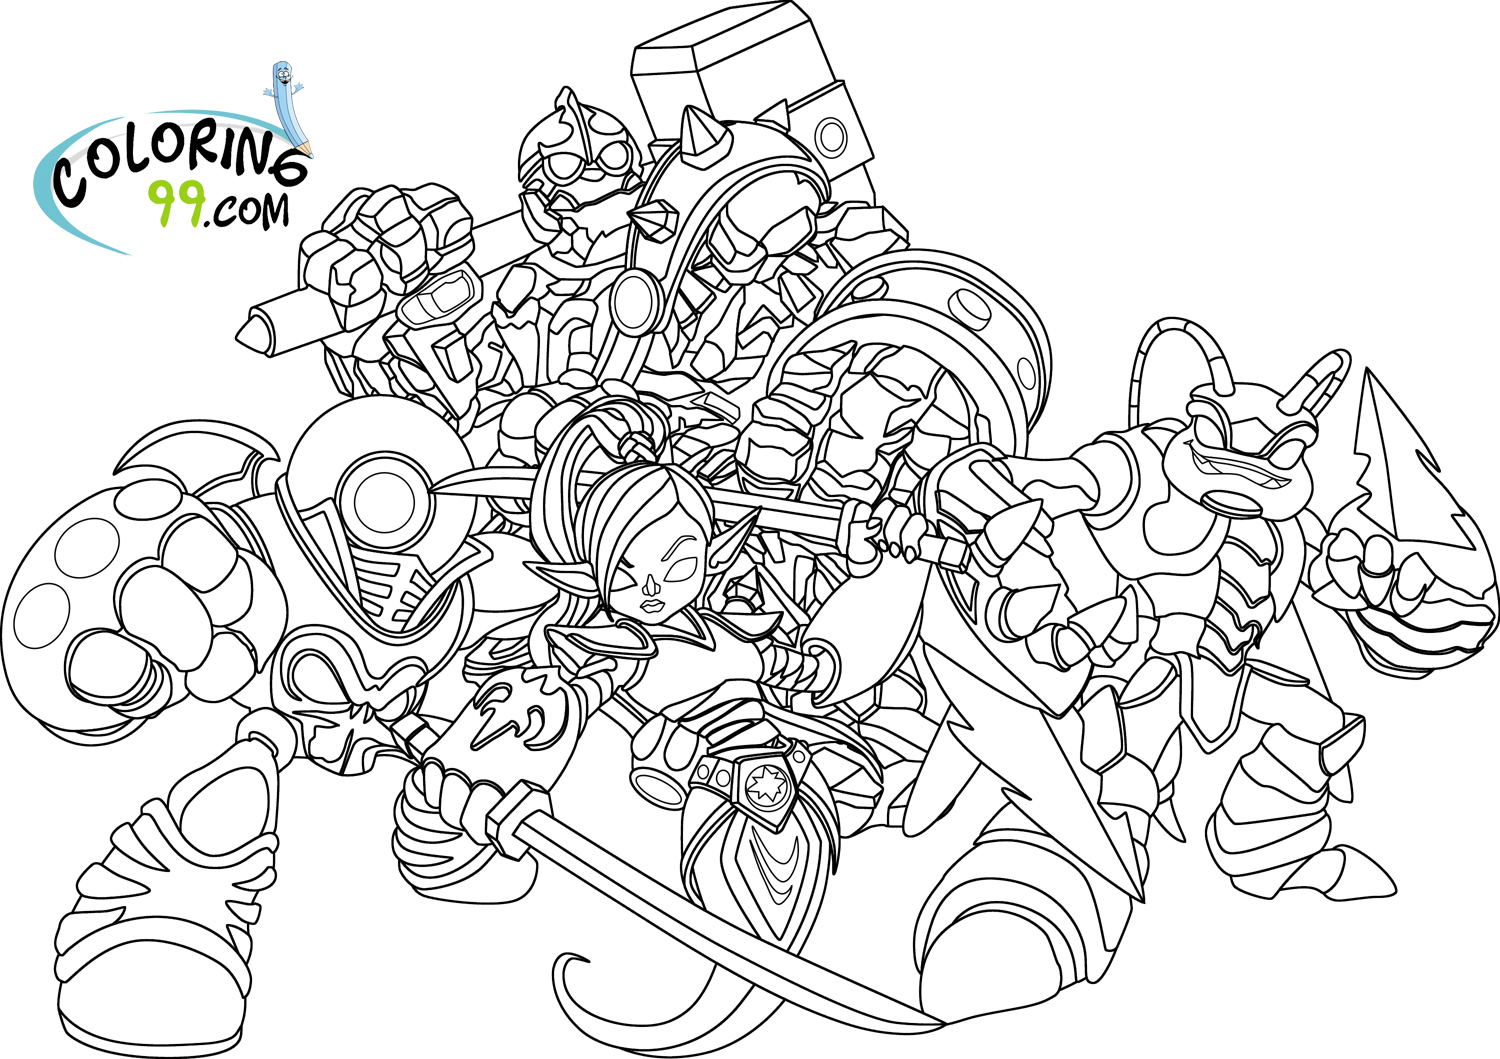 skylanders giants coloring pages | Skylanders Giants Coloring Pages | Team colors